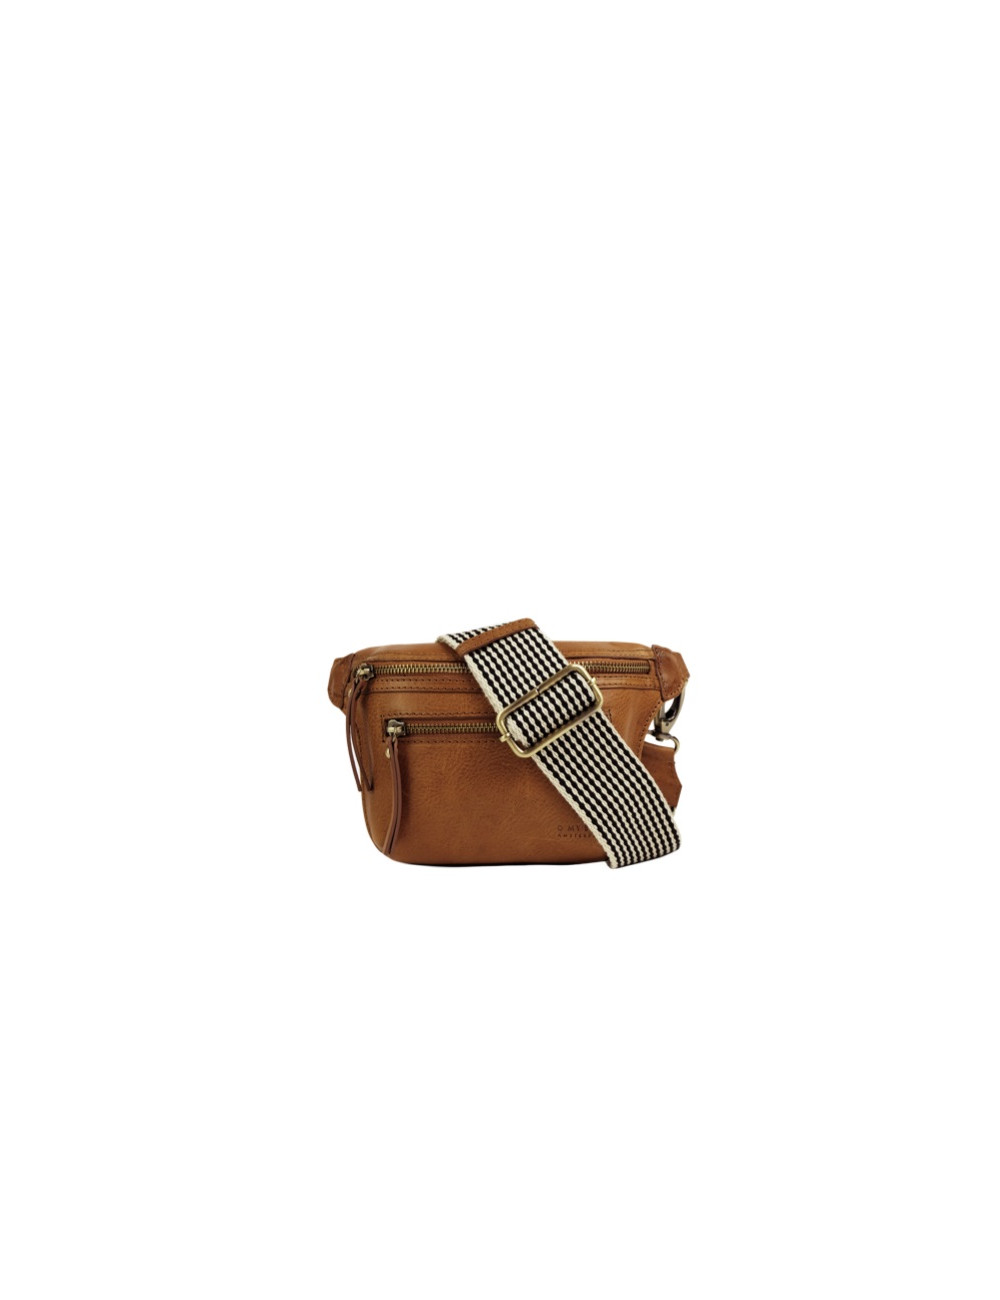 Handtas Beck's Bum Bag Cognac Stromboli Leather Checkered Strap